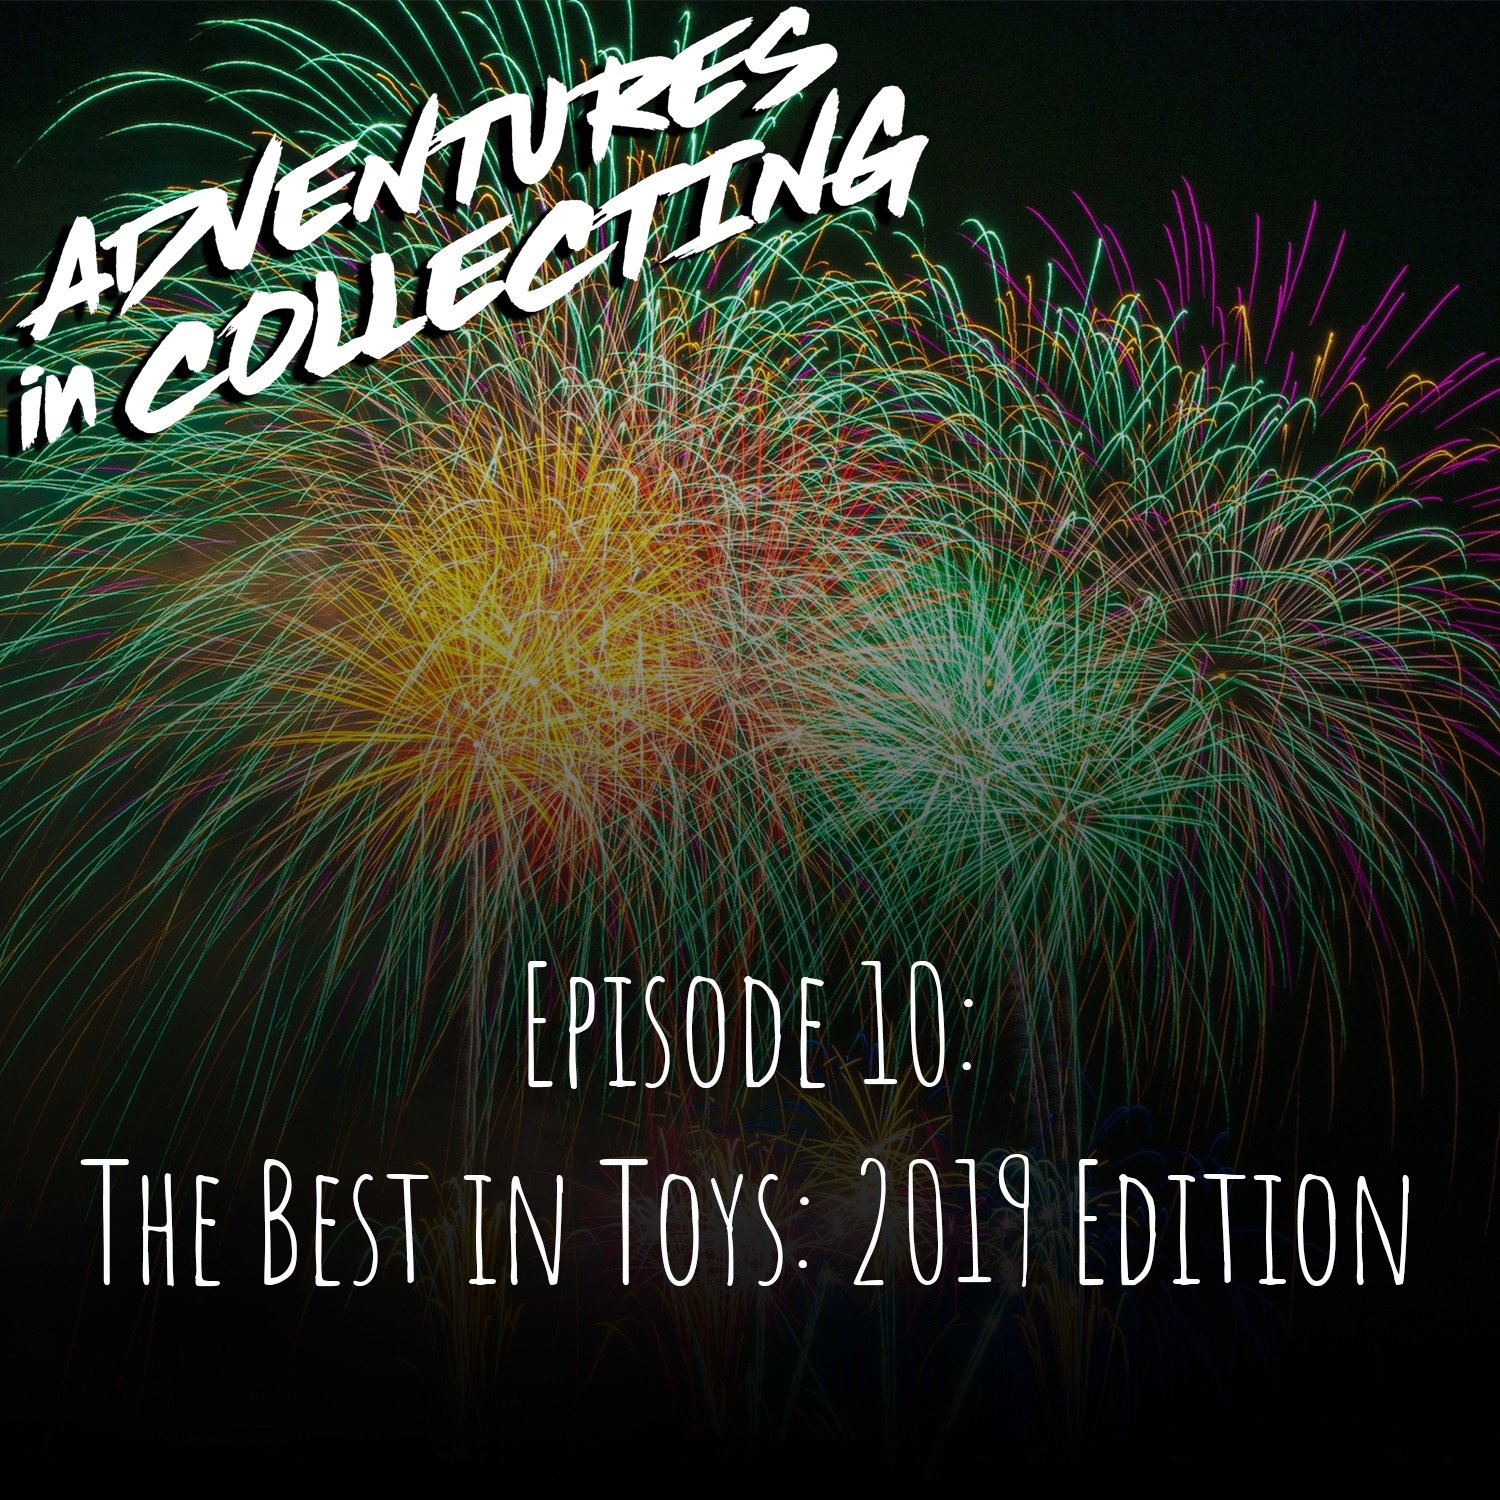 Adventures in Collecting – The Best in Toys: 2019 Edition